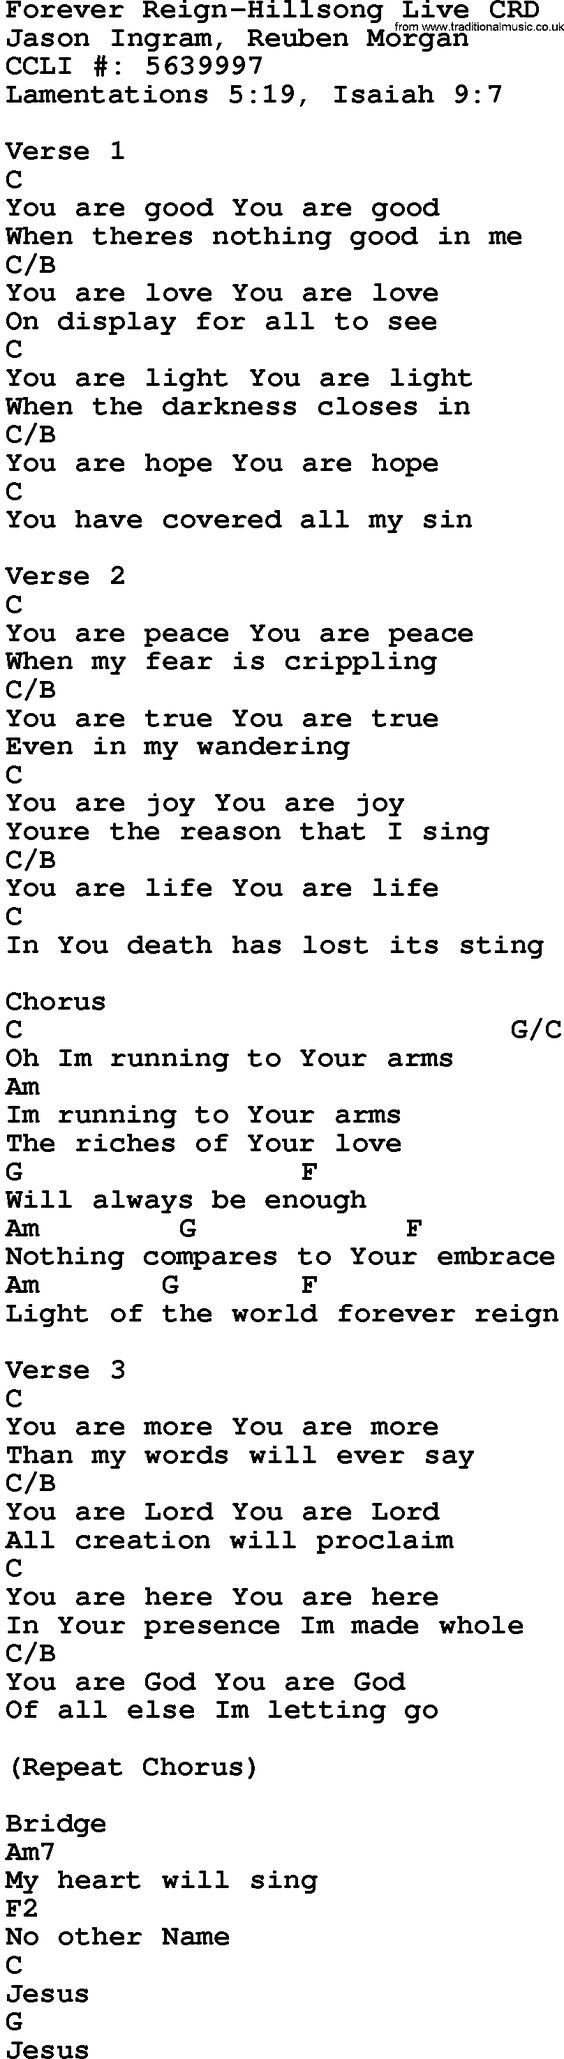 Yes love will find a way guitar chords